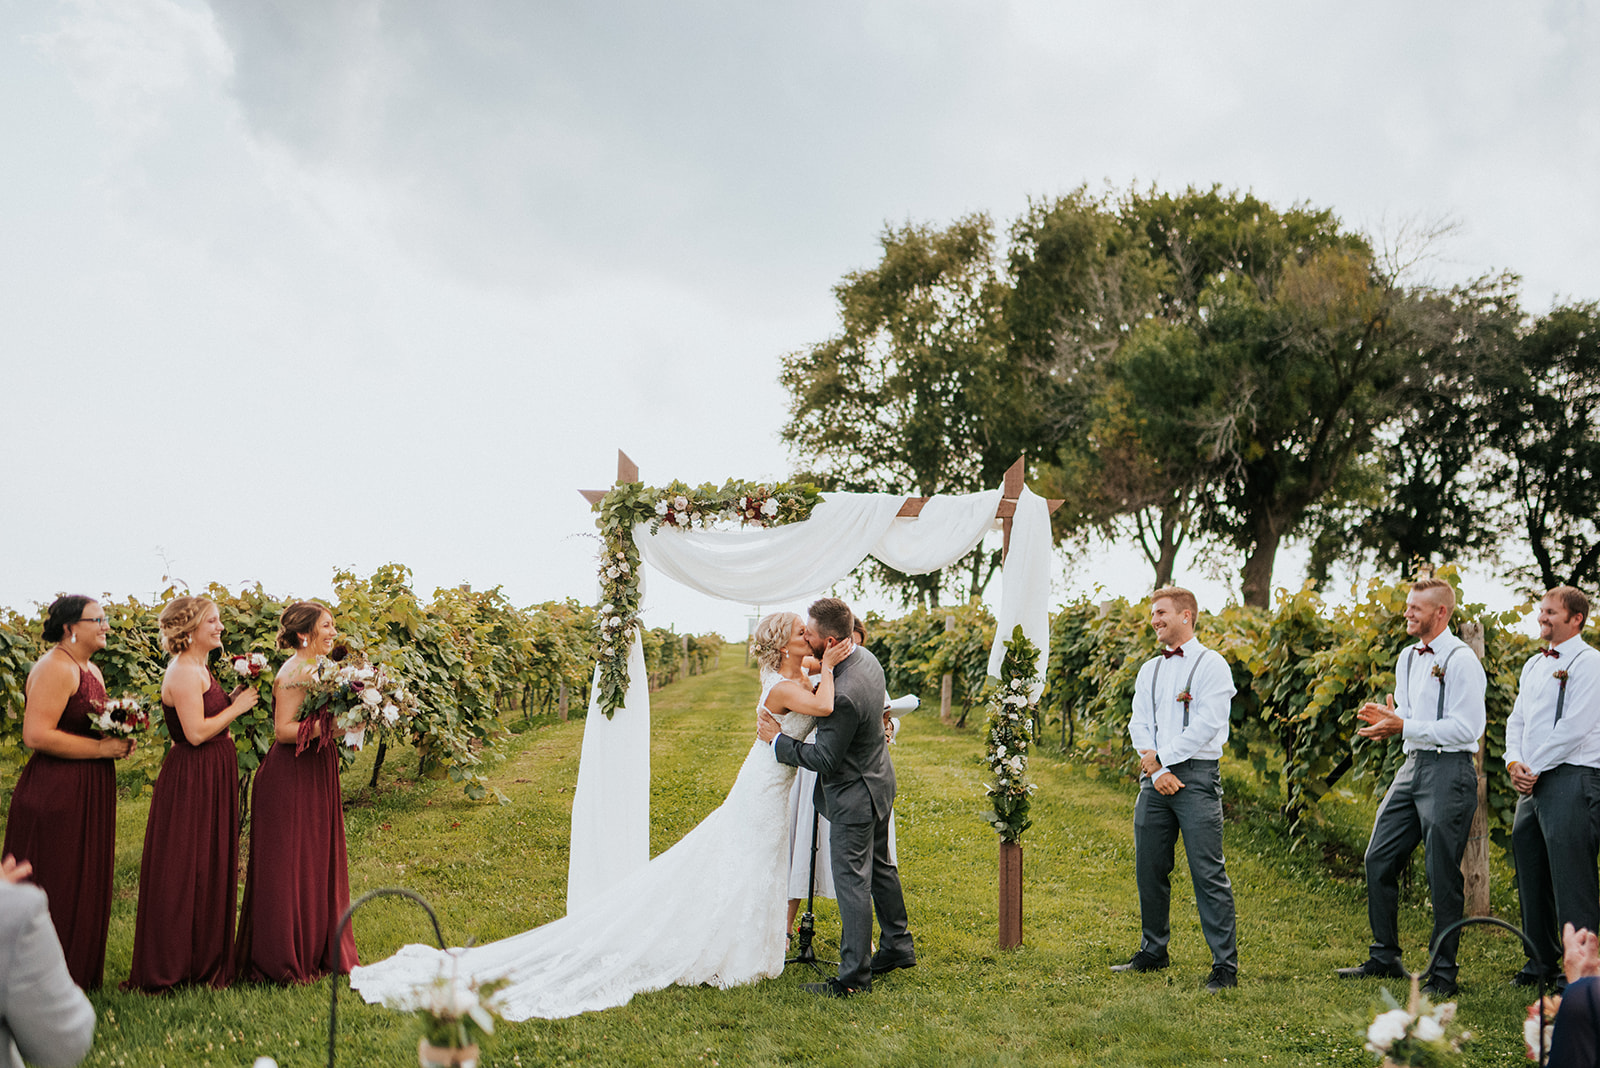 overthevineswisconsinwedding_0682.jpg